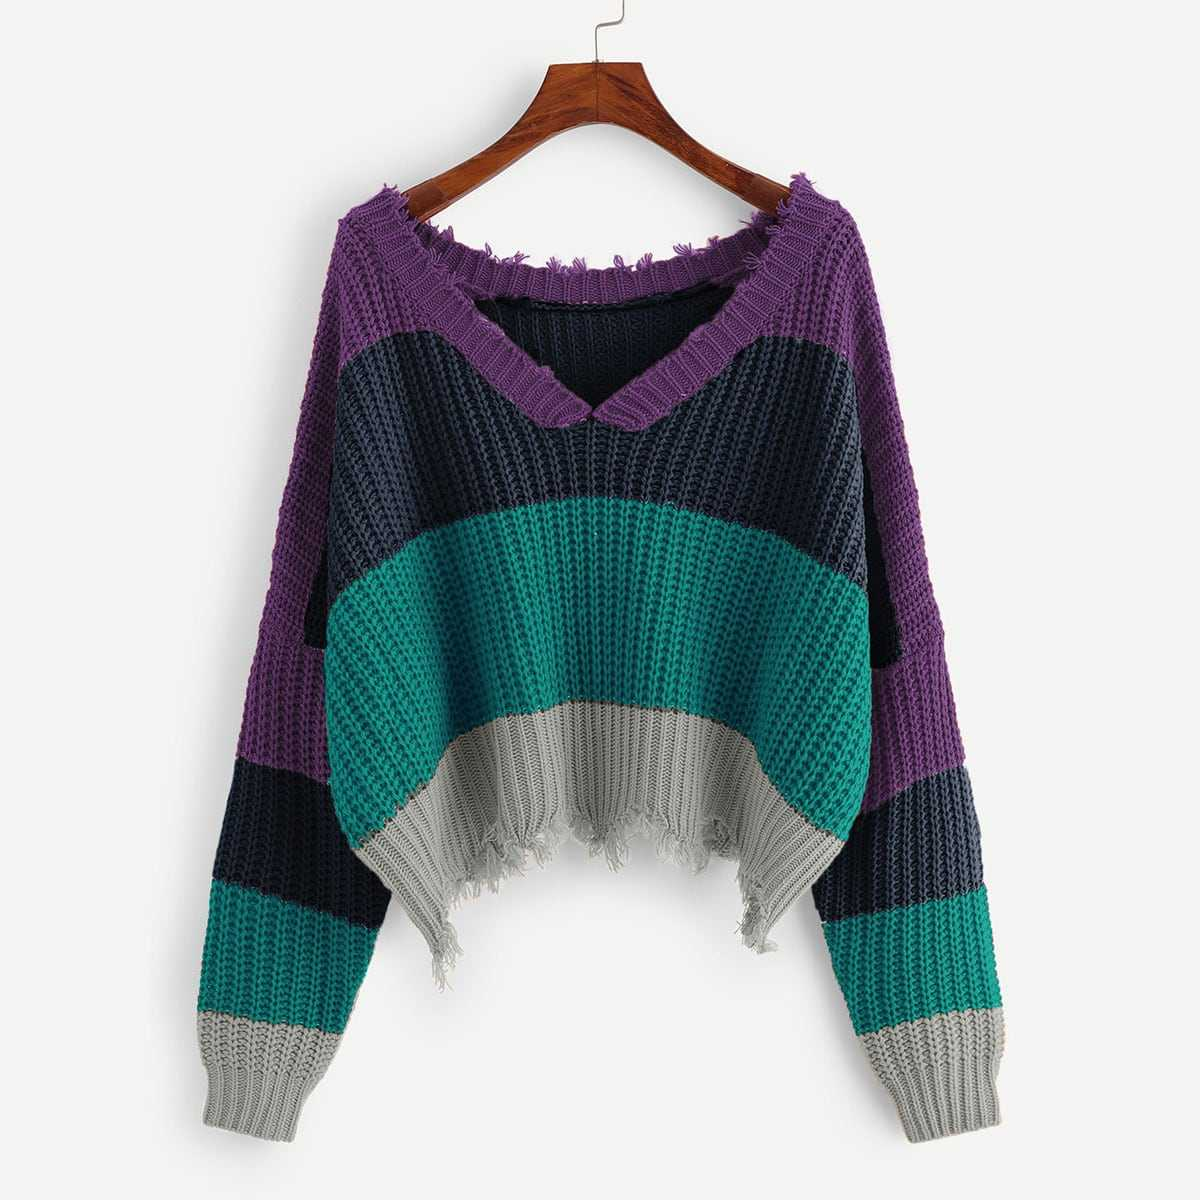 Color Block Raw Hem Sweater in Multicolor by ROMWE on GOOFASH